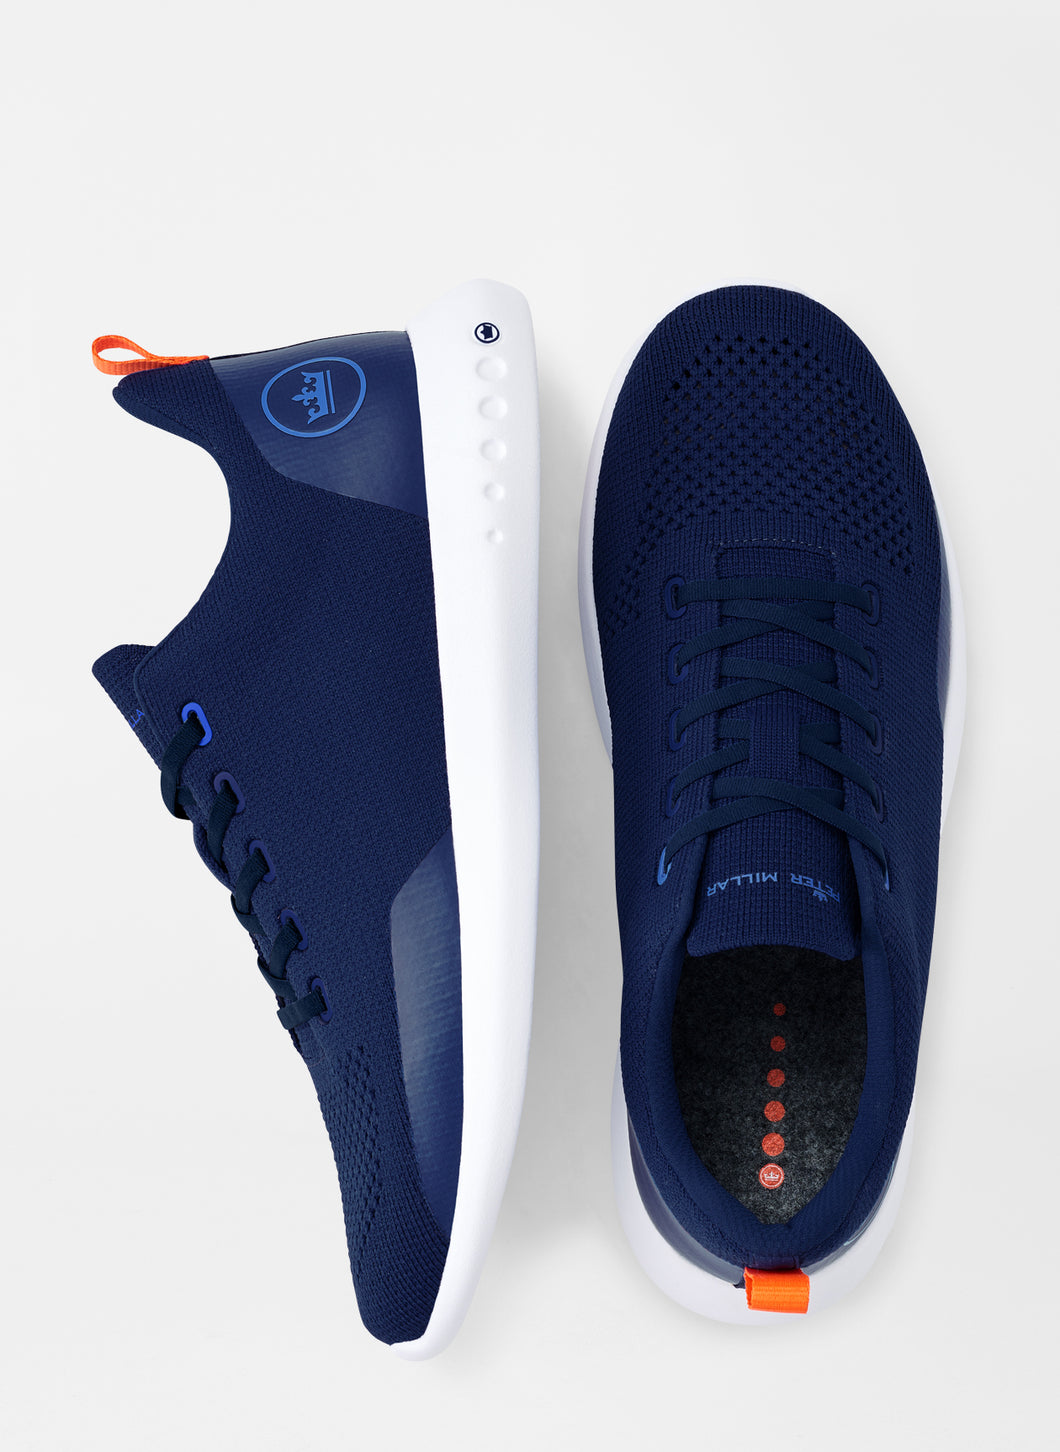 Peter Millar Hyperlight Glide Sneaker 2.0 Navy